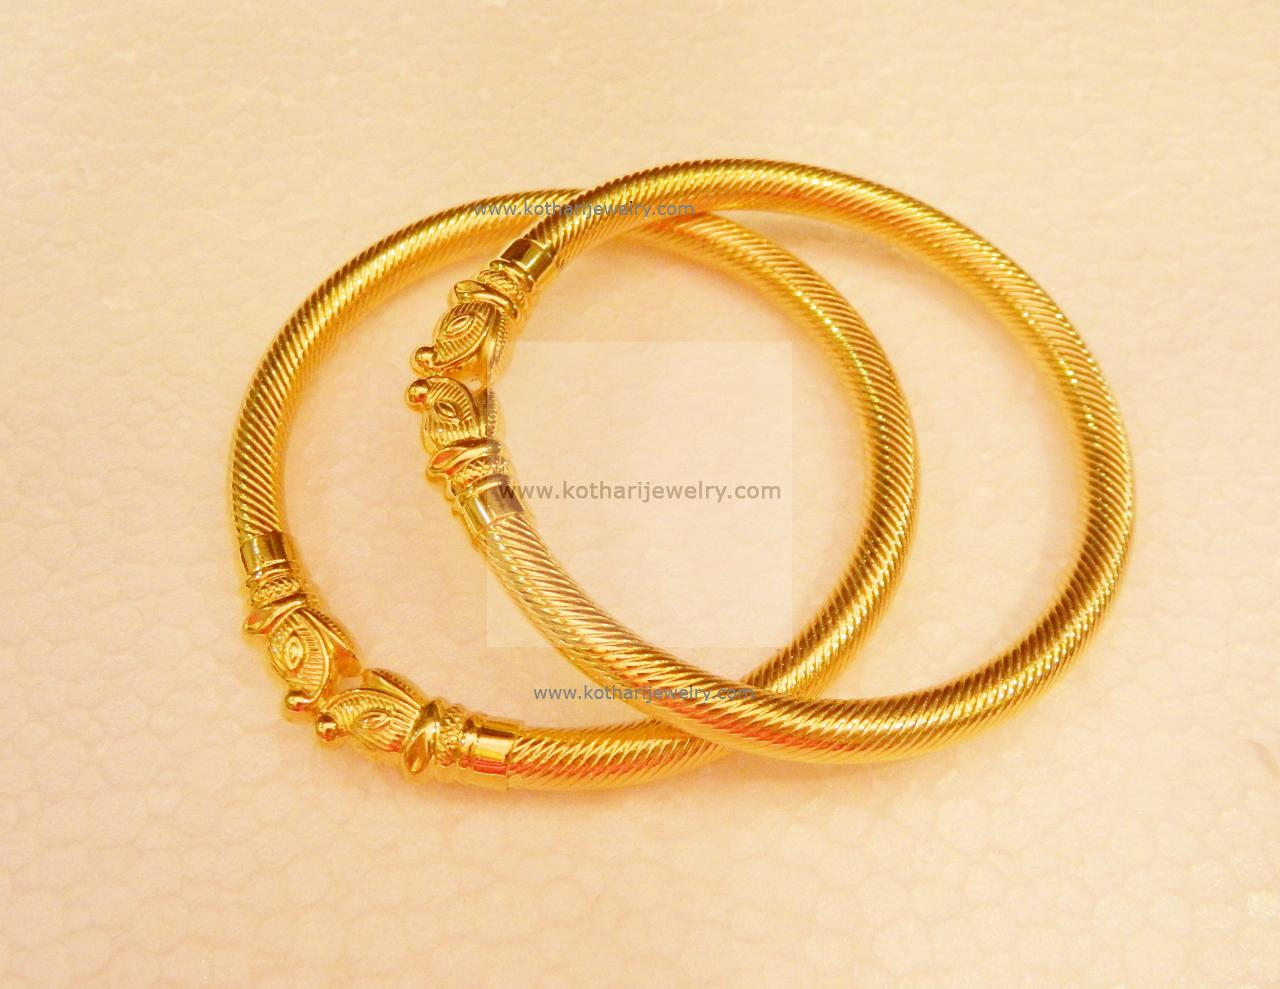 product bangles jewelry shipping bracelet inch today gold bracelets herringbone bangle free strand braided tricolor karat overstock watches fremada